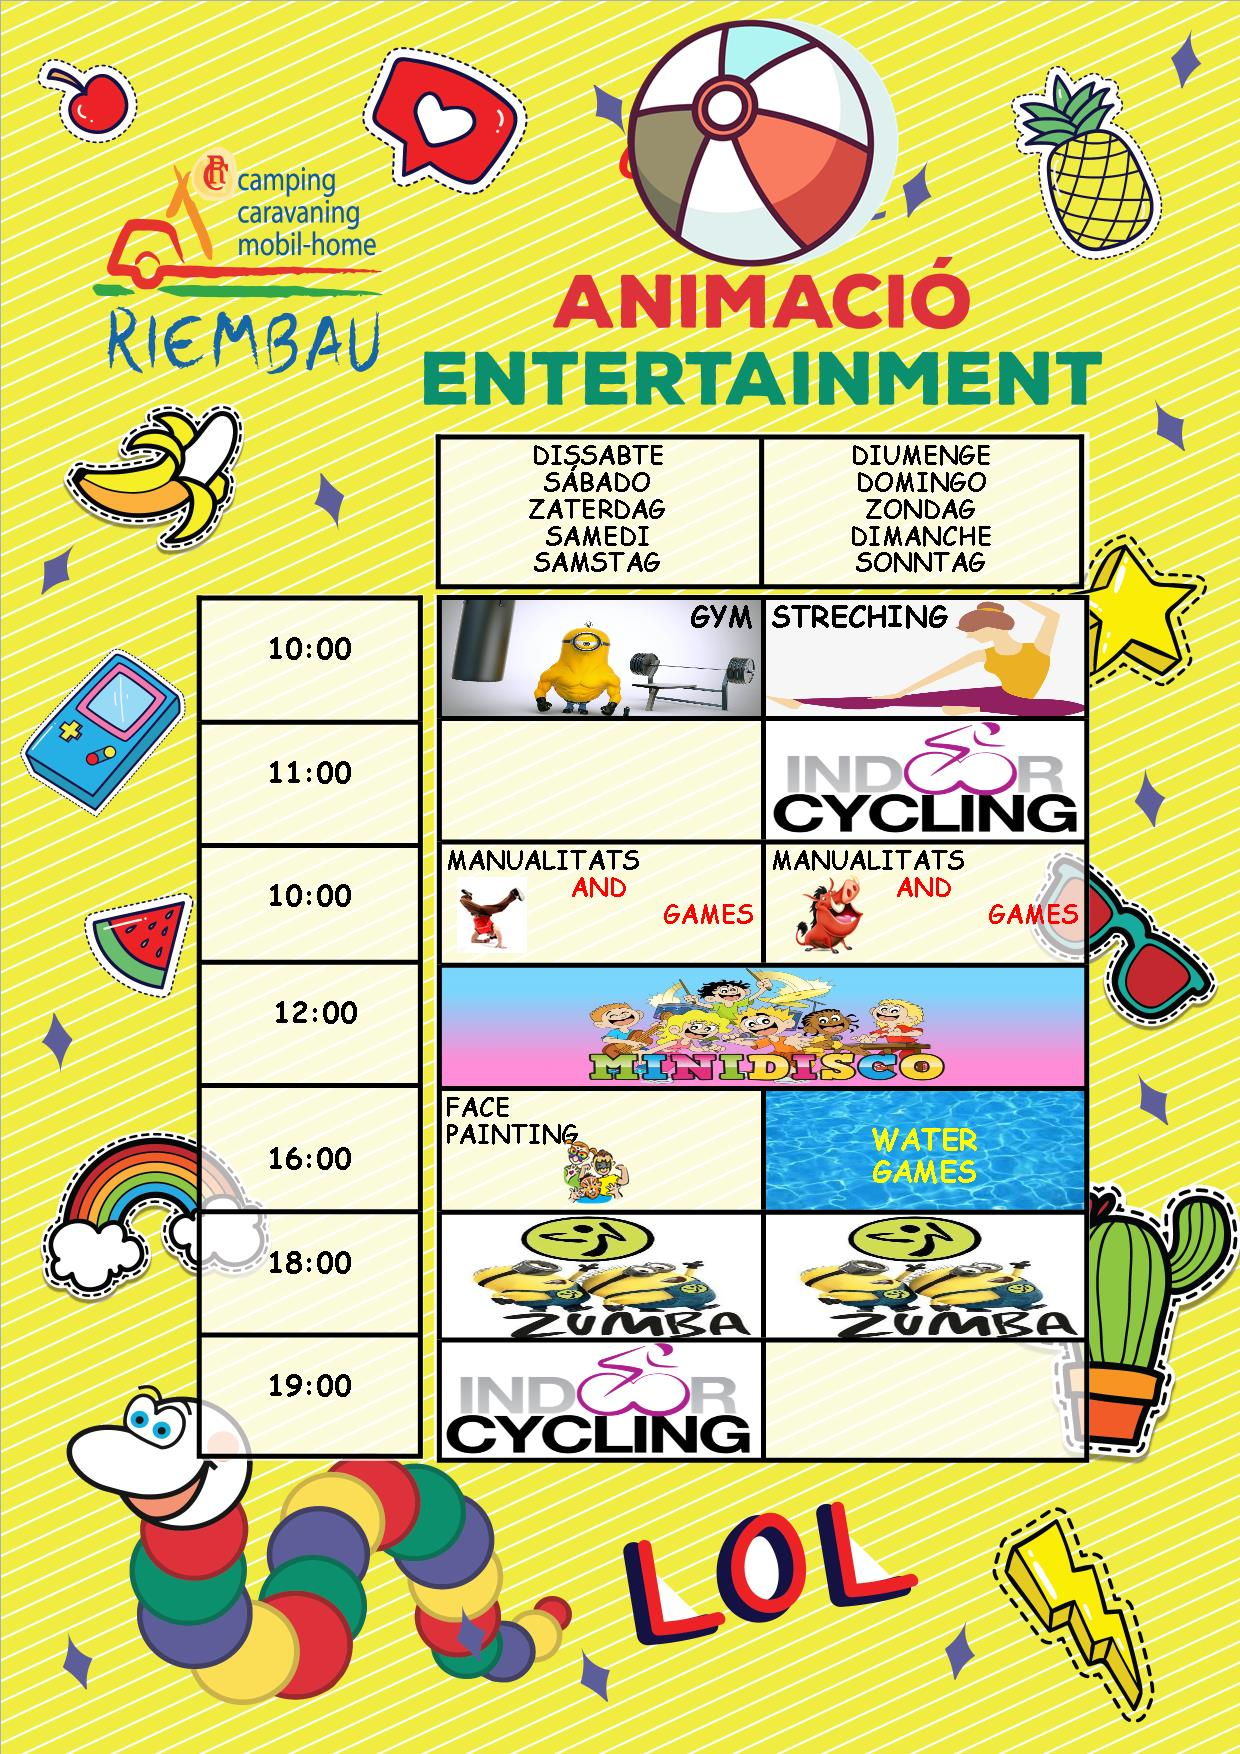 Activities from 08th to 09th June May by the Rimbi Club at Camping Riembau in Platja d'Aro!